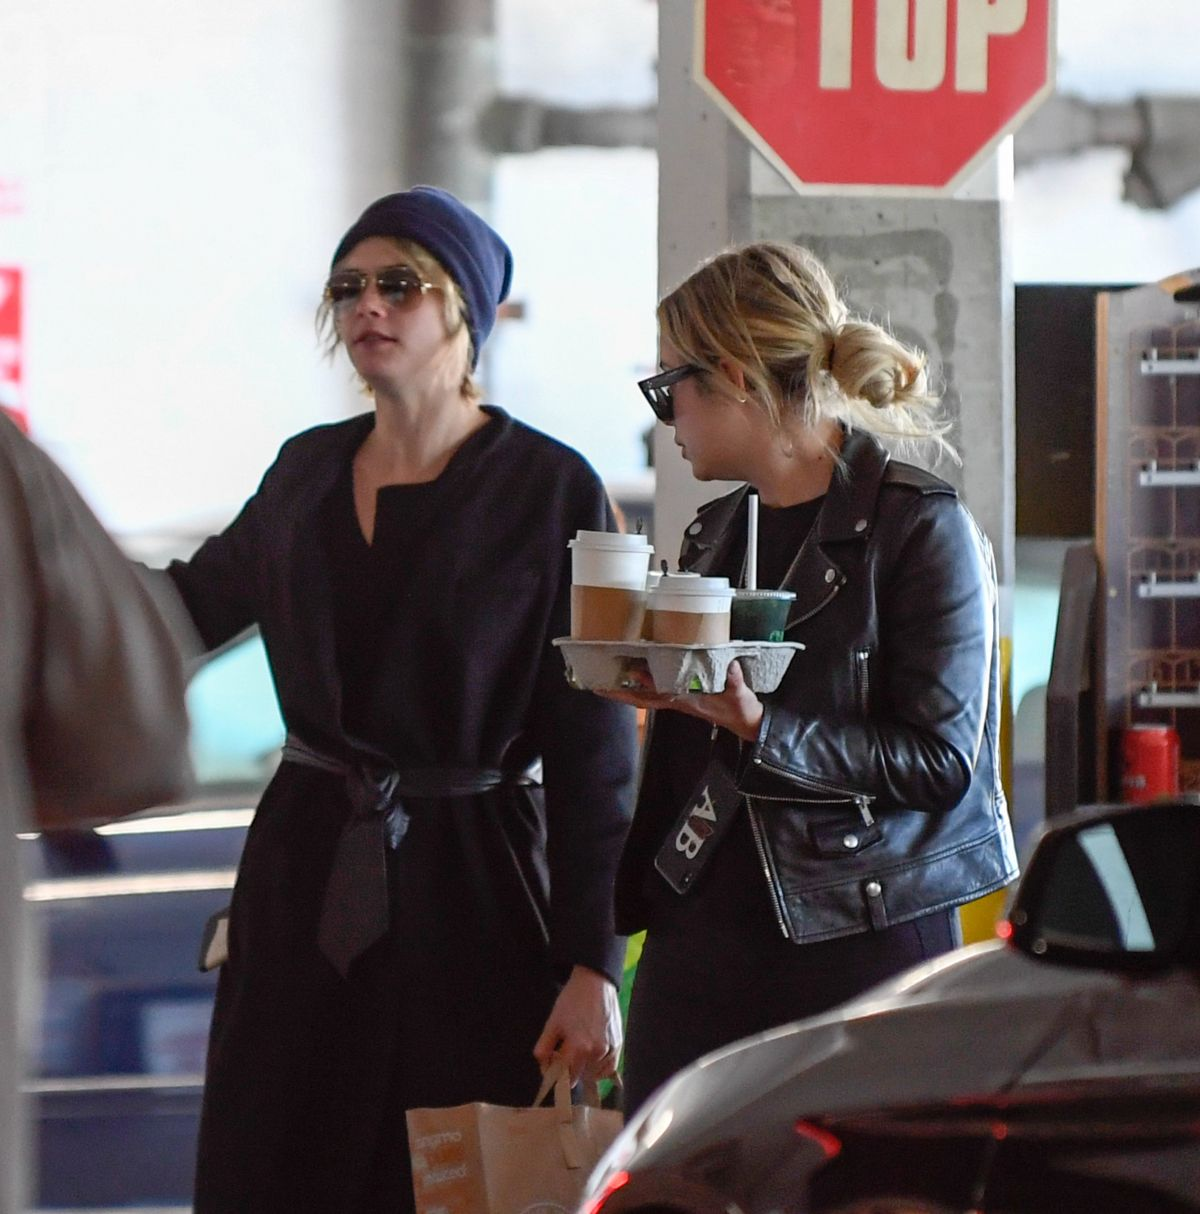 Cara Delevingne And Ashley Benson At Erewhon In Los Angeles 11 04